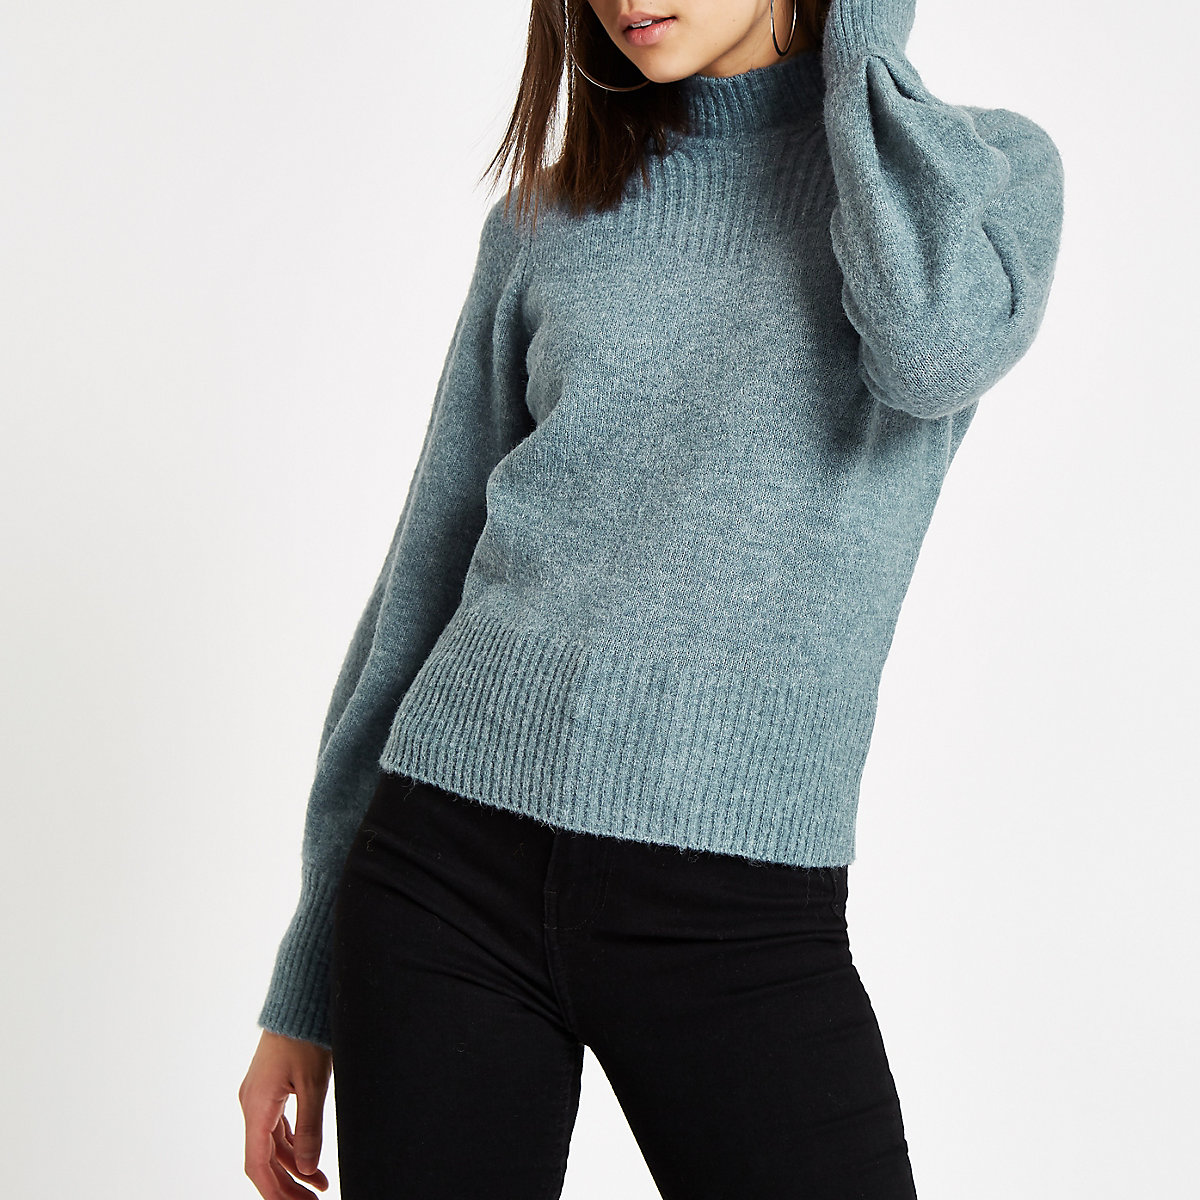 Blue turtle neck bell sleeve knit sweater